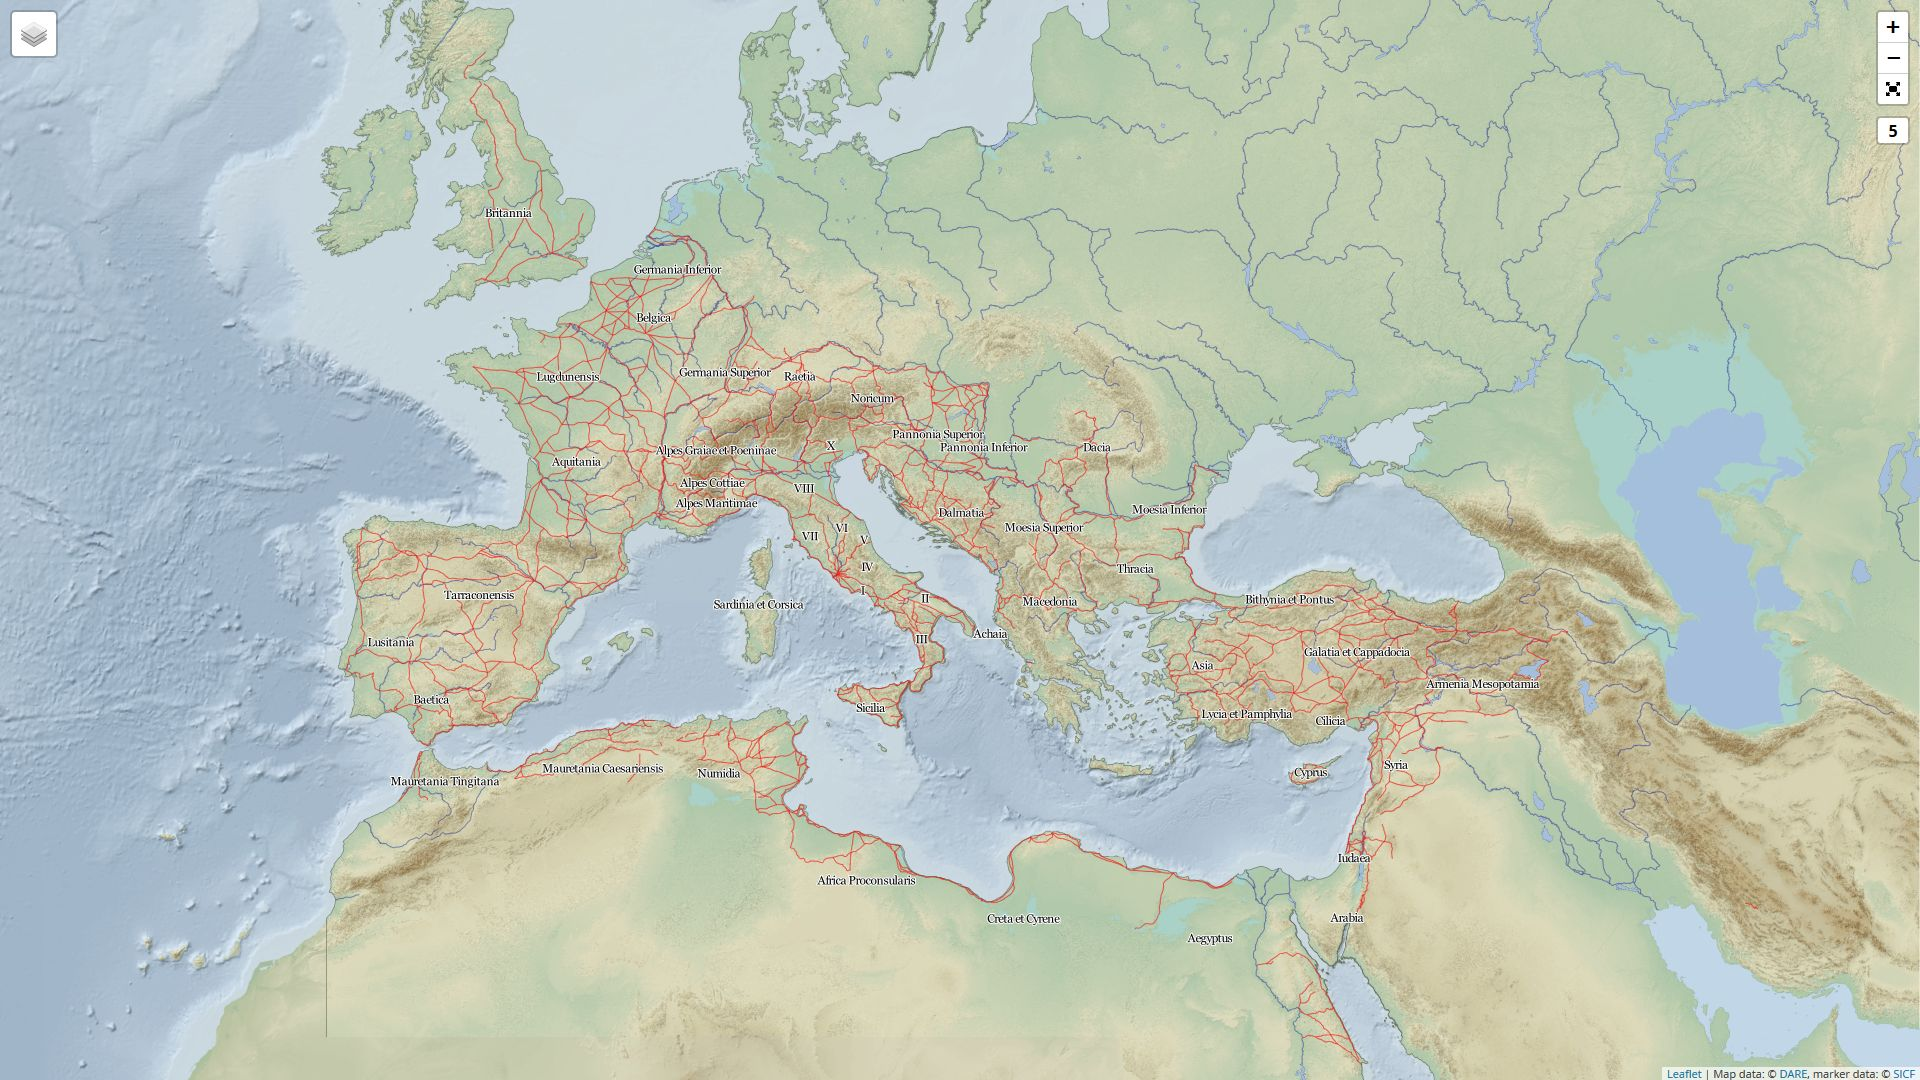 Digital Atlas of the Roman Empire: Karte des Imperium Romanum